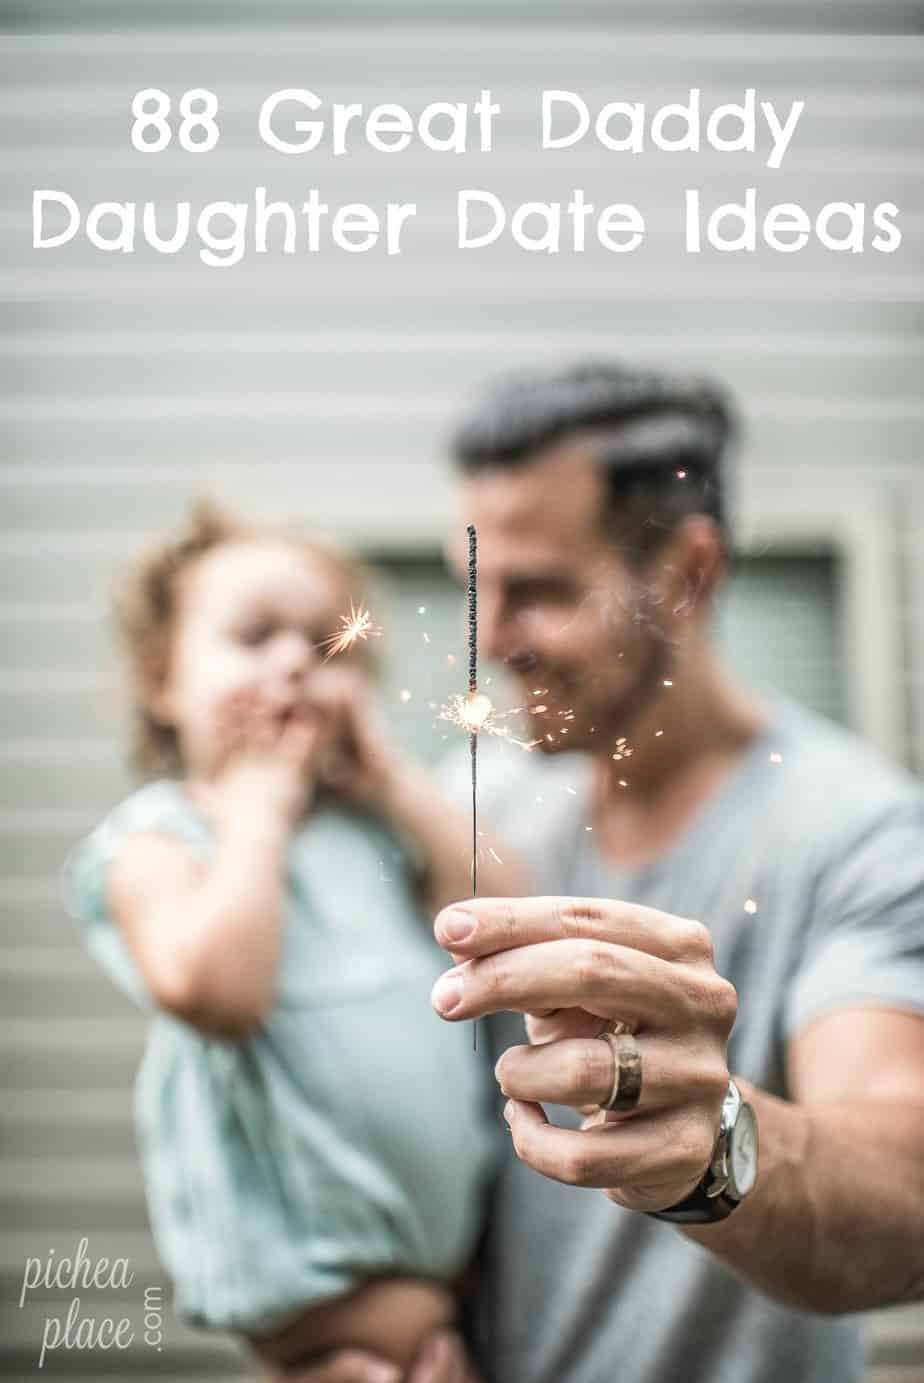 88 Great Daddy Daughter Date Ideas